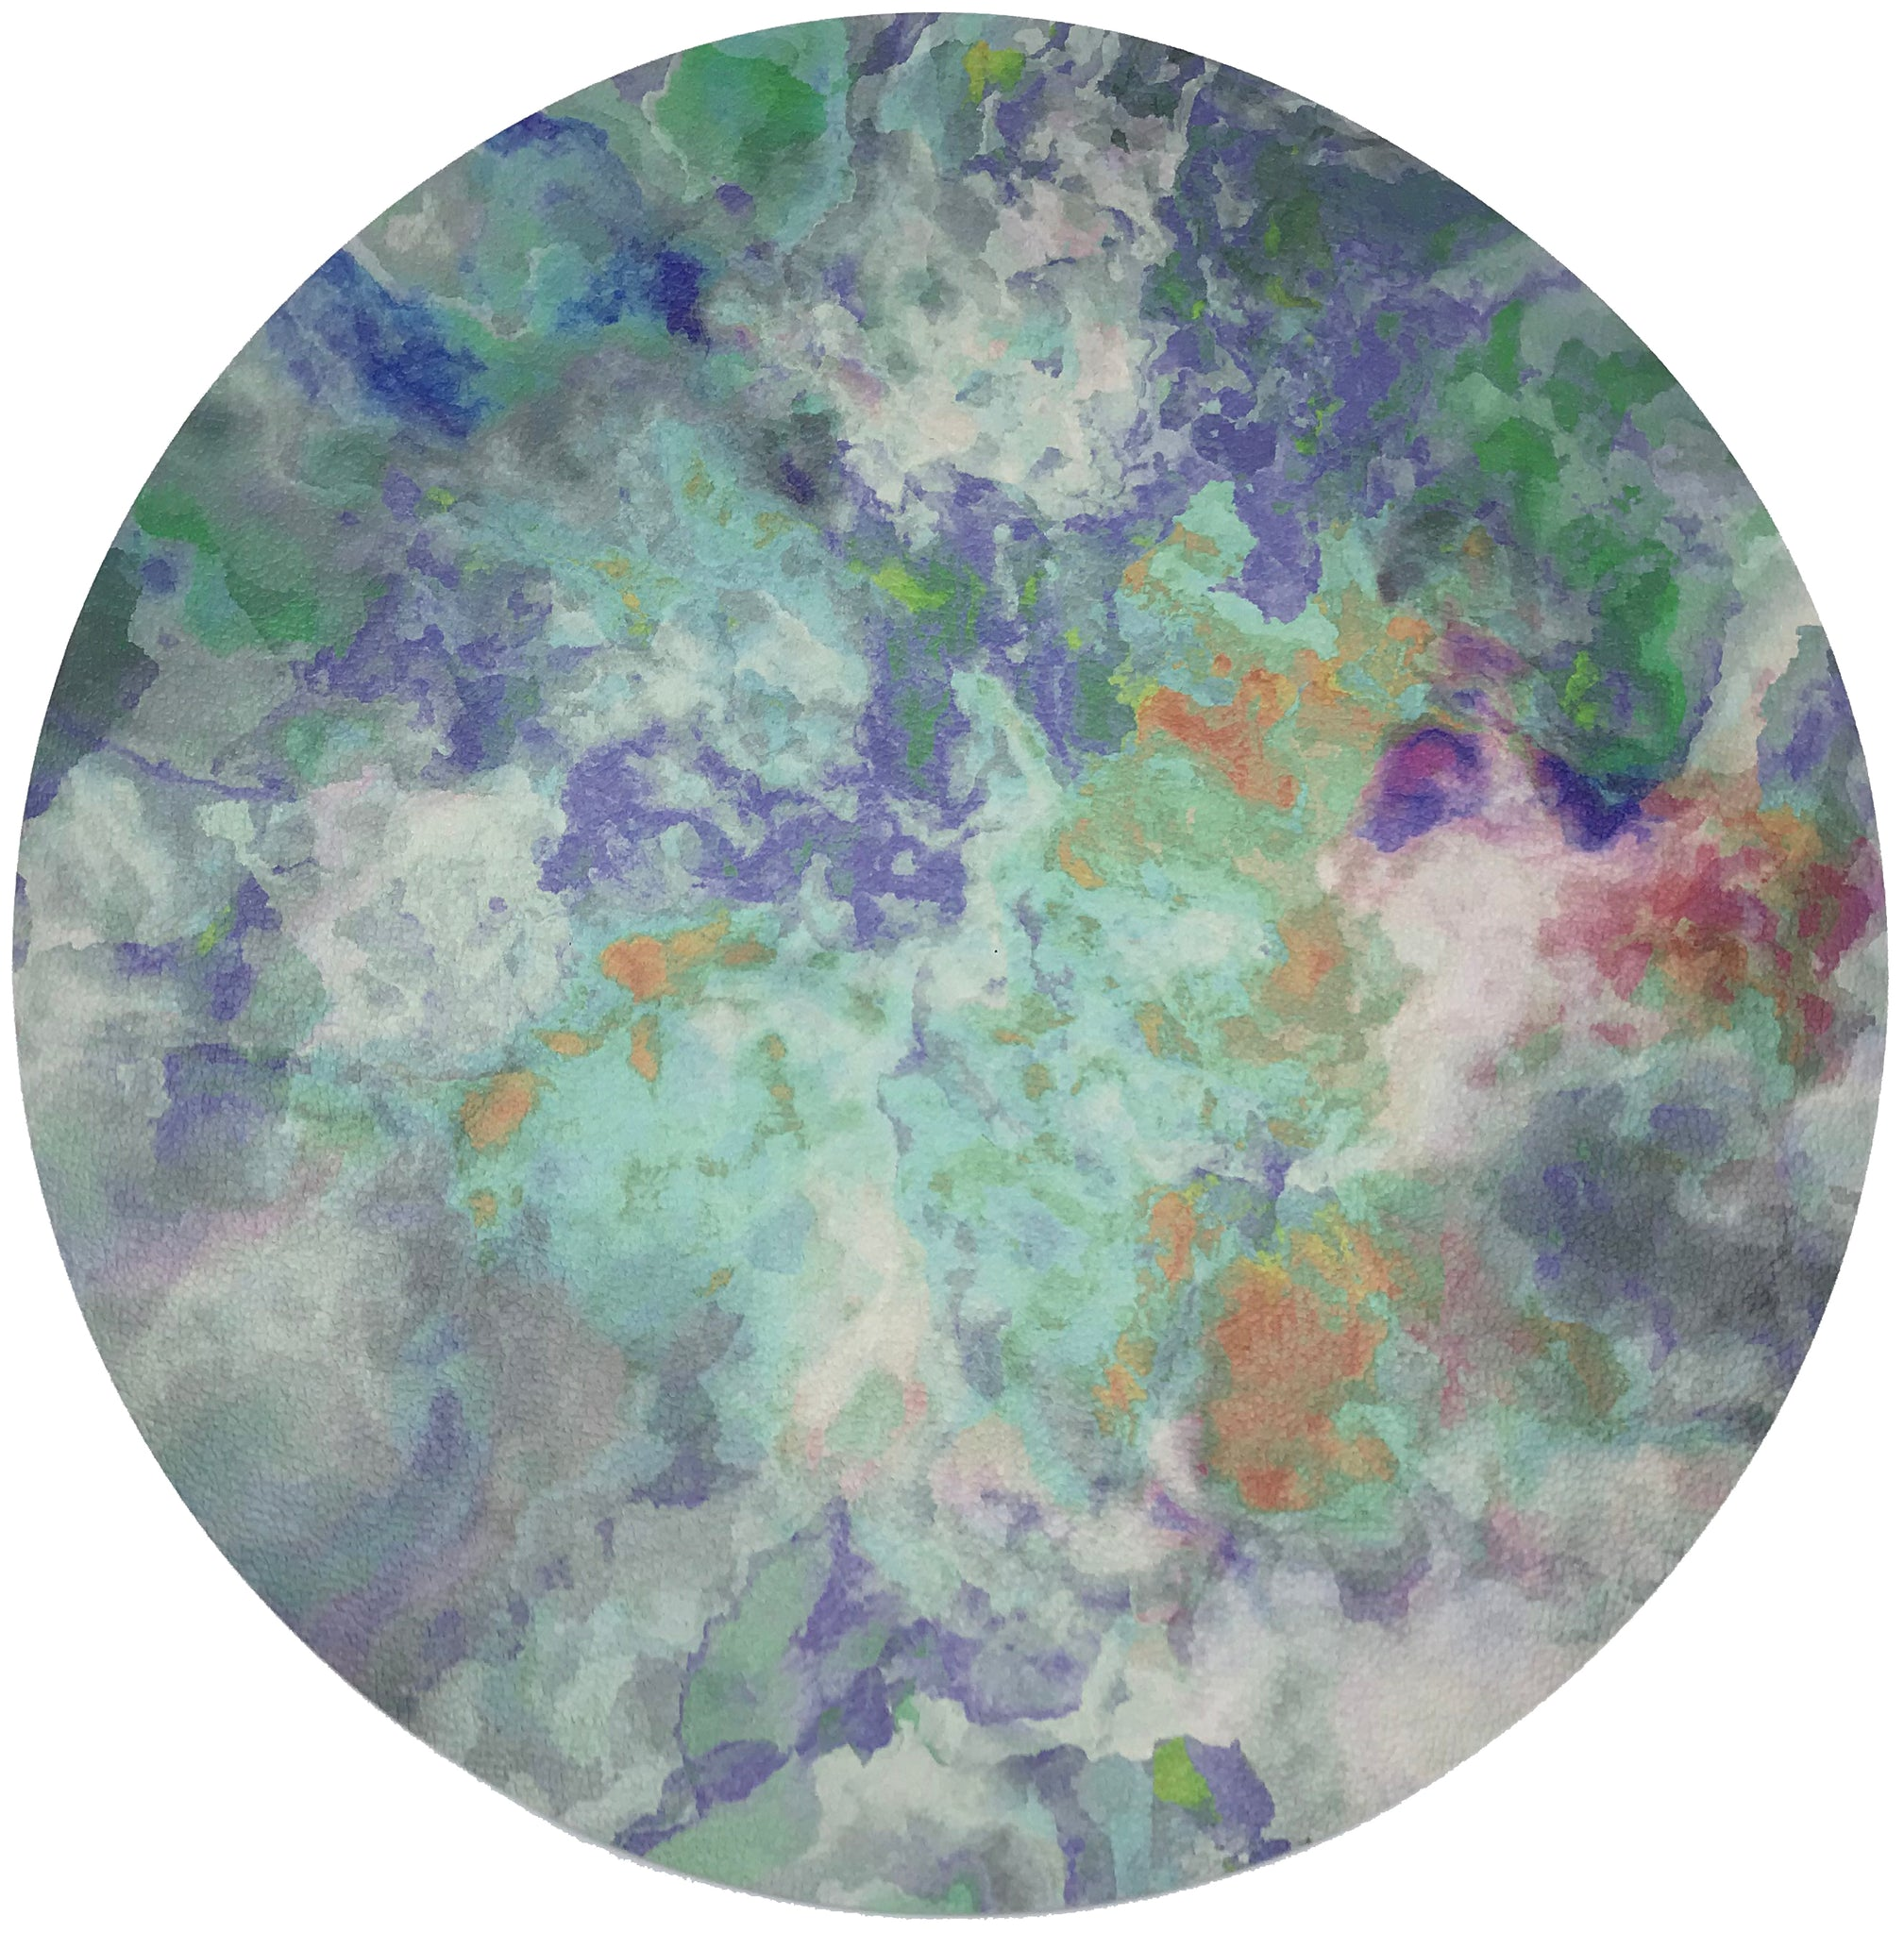 "IMPRESSIONISM SPRING 16"" ROUND PEBBLE PLACEMATS, SET OF 4 - nicolettemayer.shop"